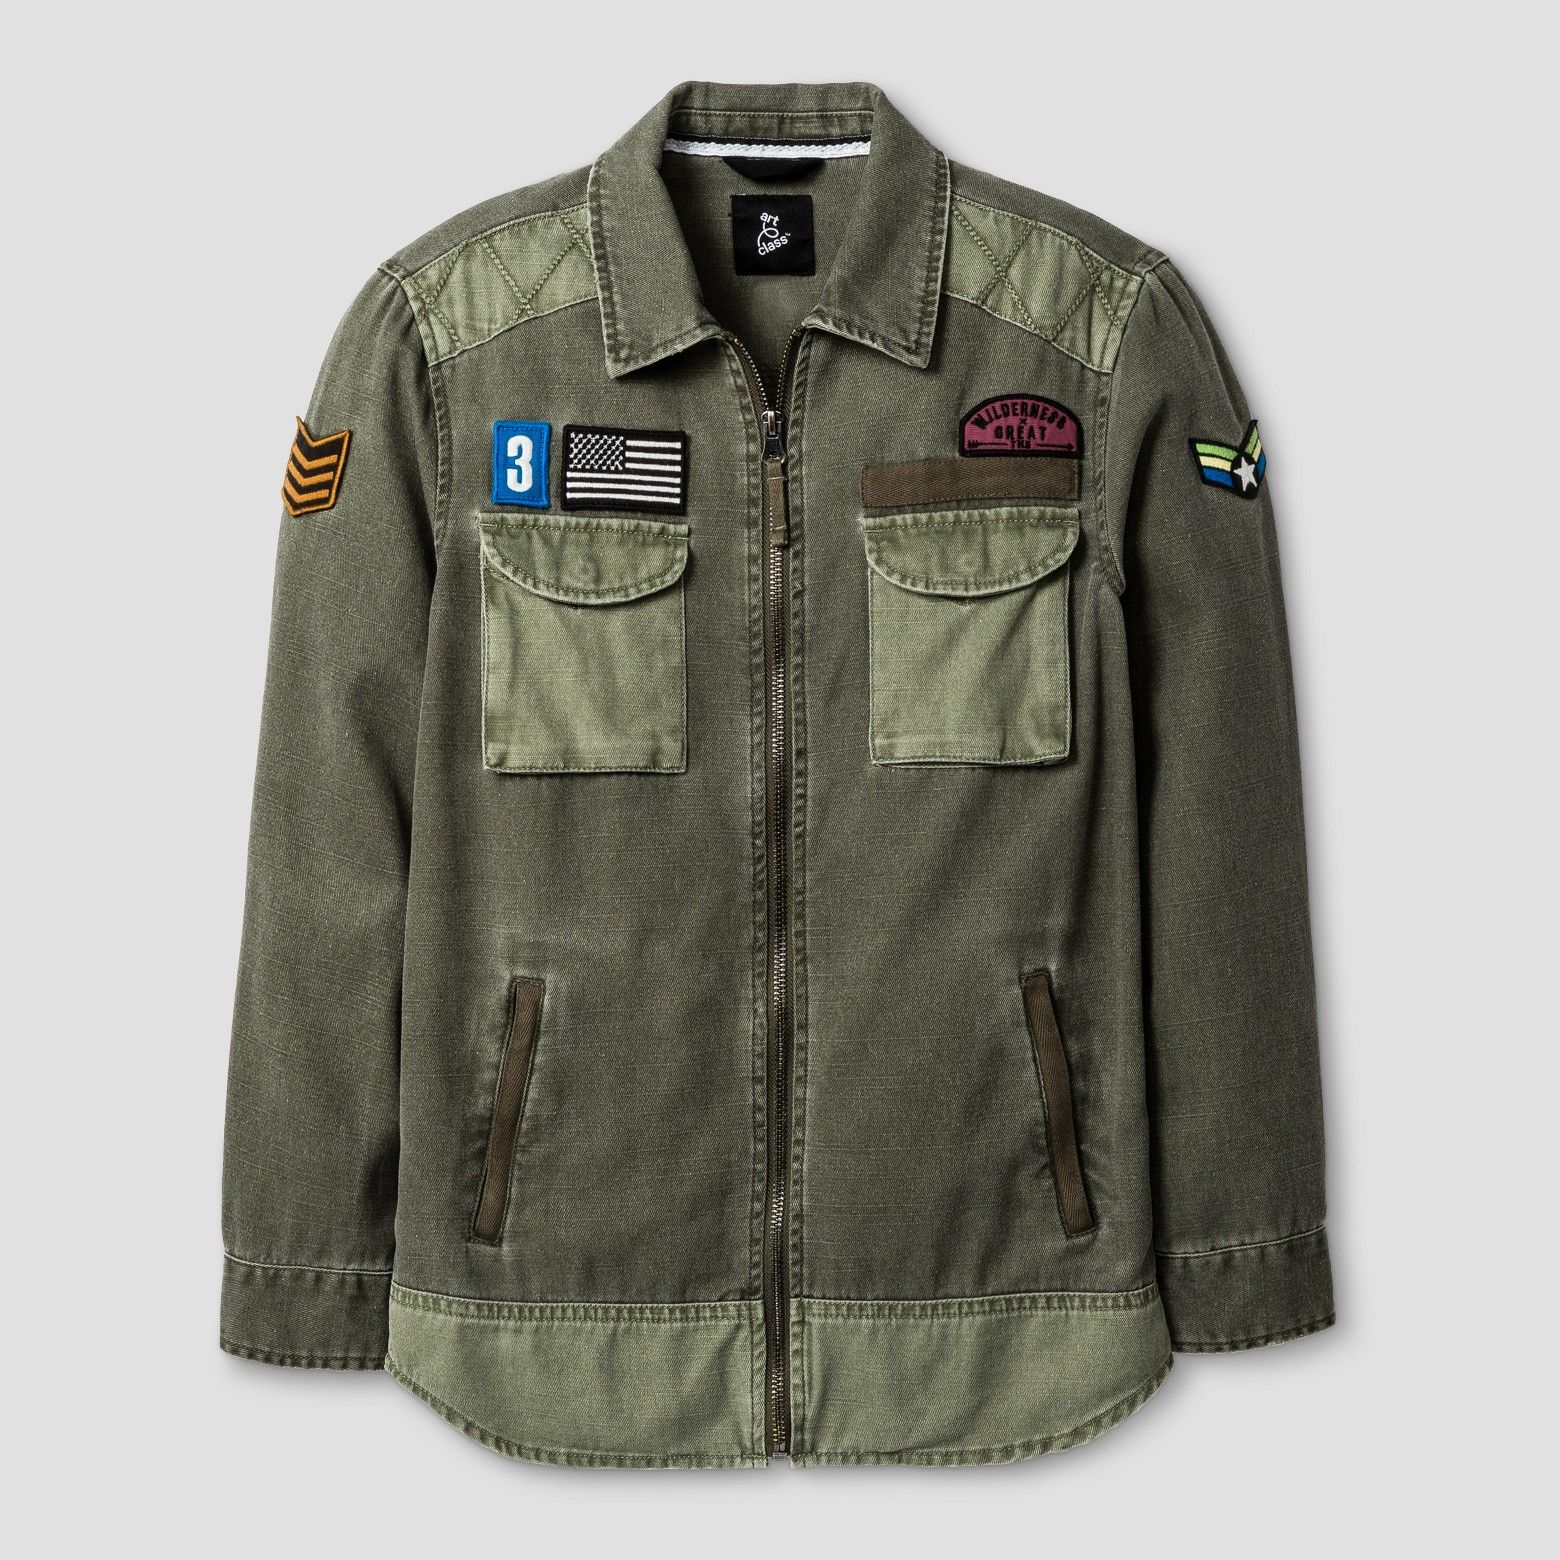 ff22d66acec2 Shop Target for coats   jackets you will love at great low prices. Free  shipping on orders  35+ or free same-day pick-up in store.